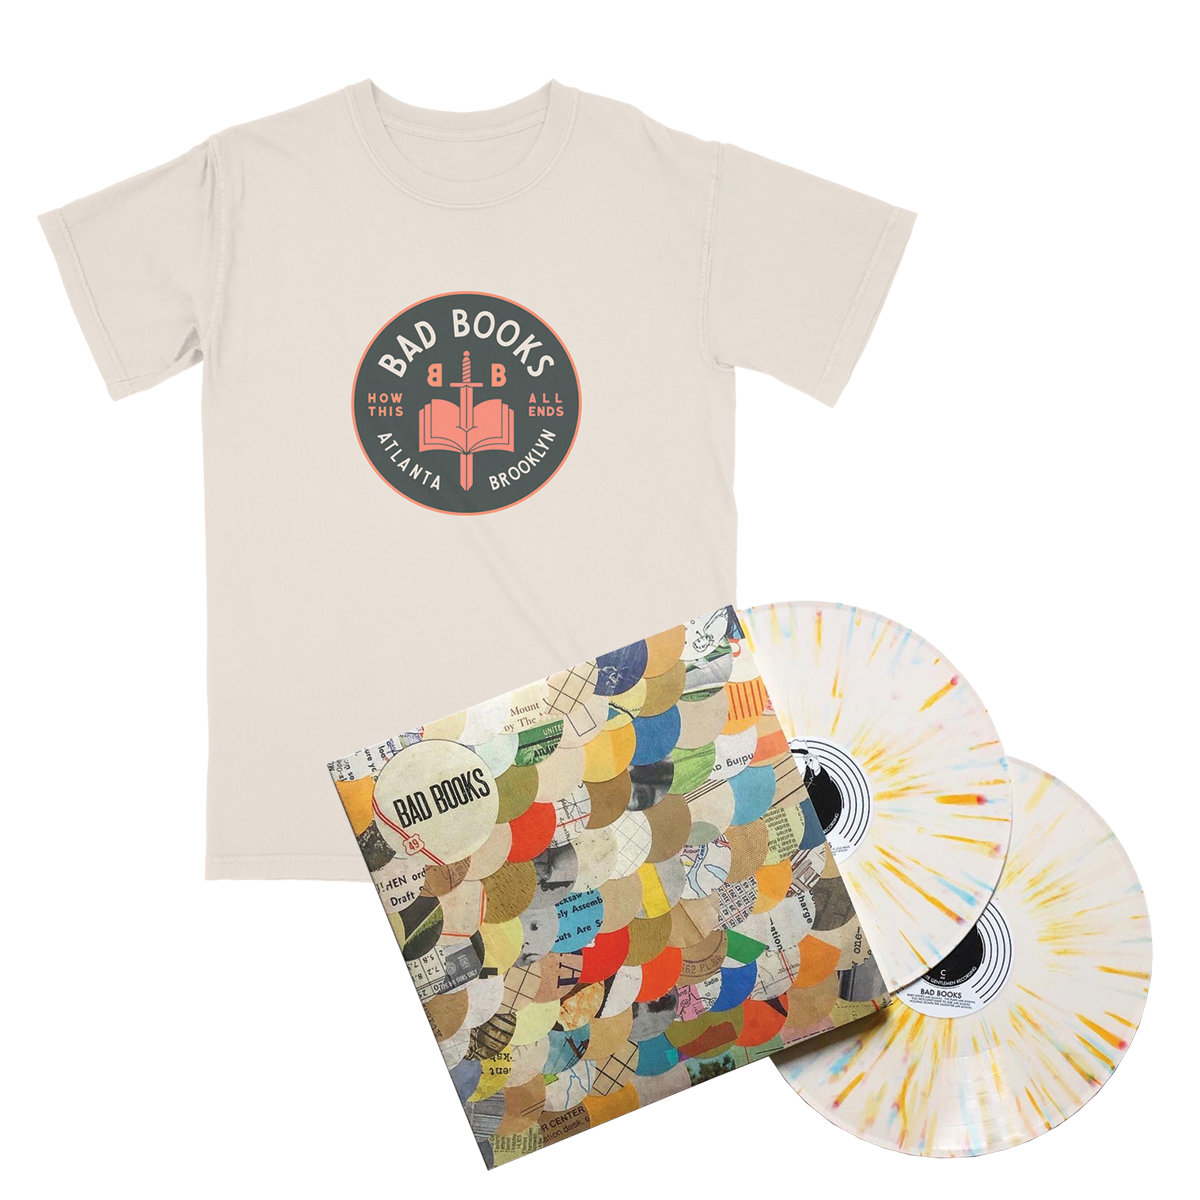 Anniversary LP + How This All Ends Tee